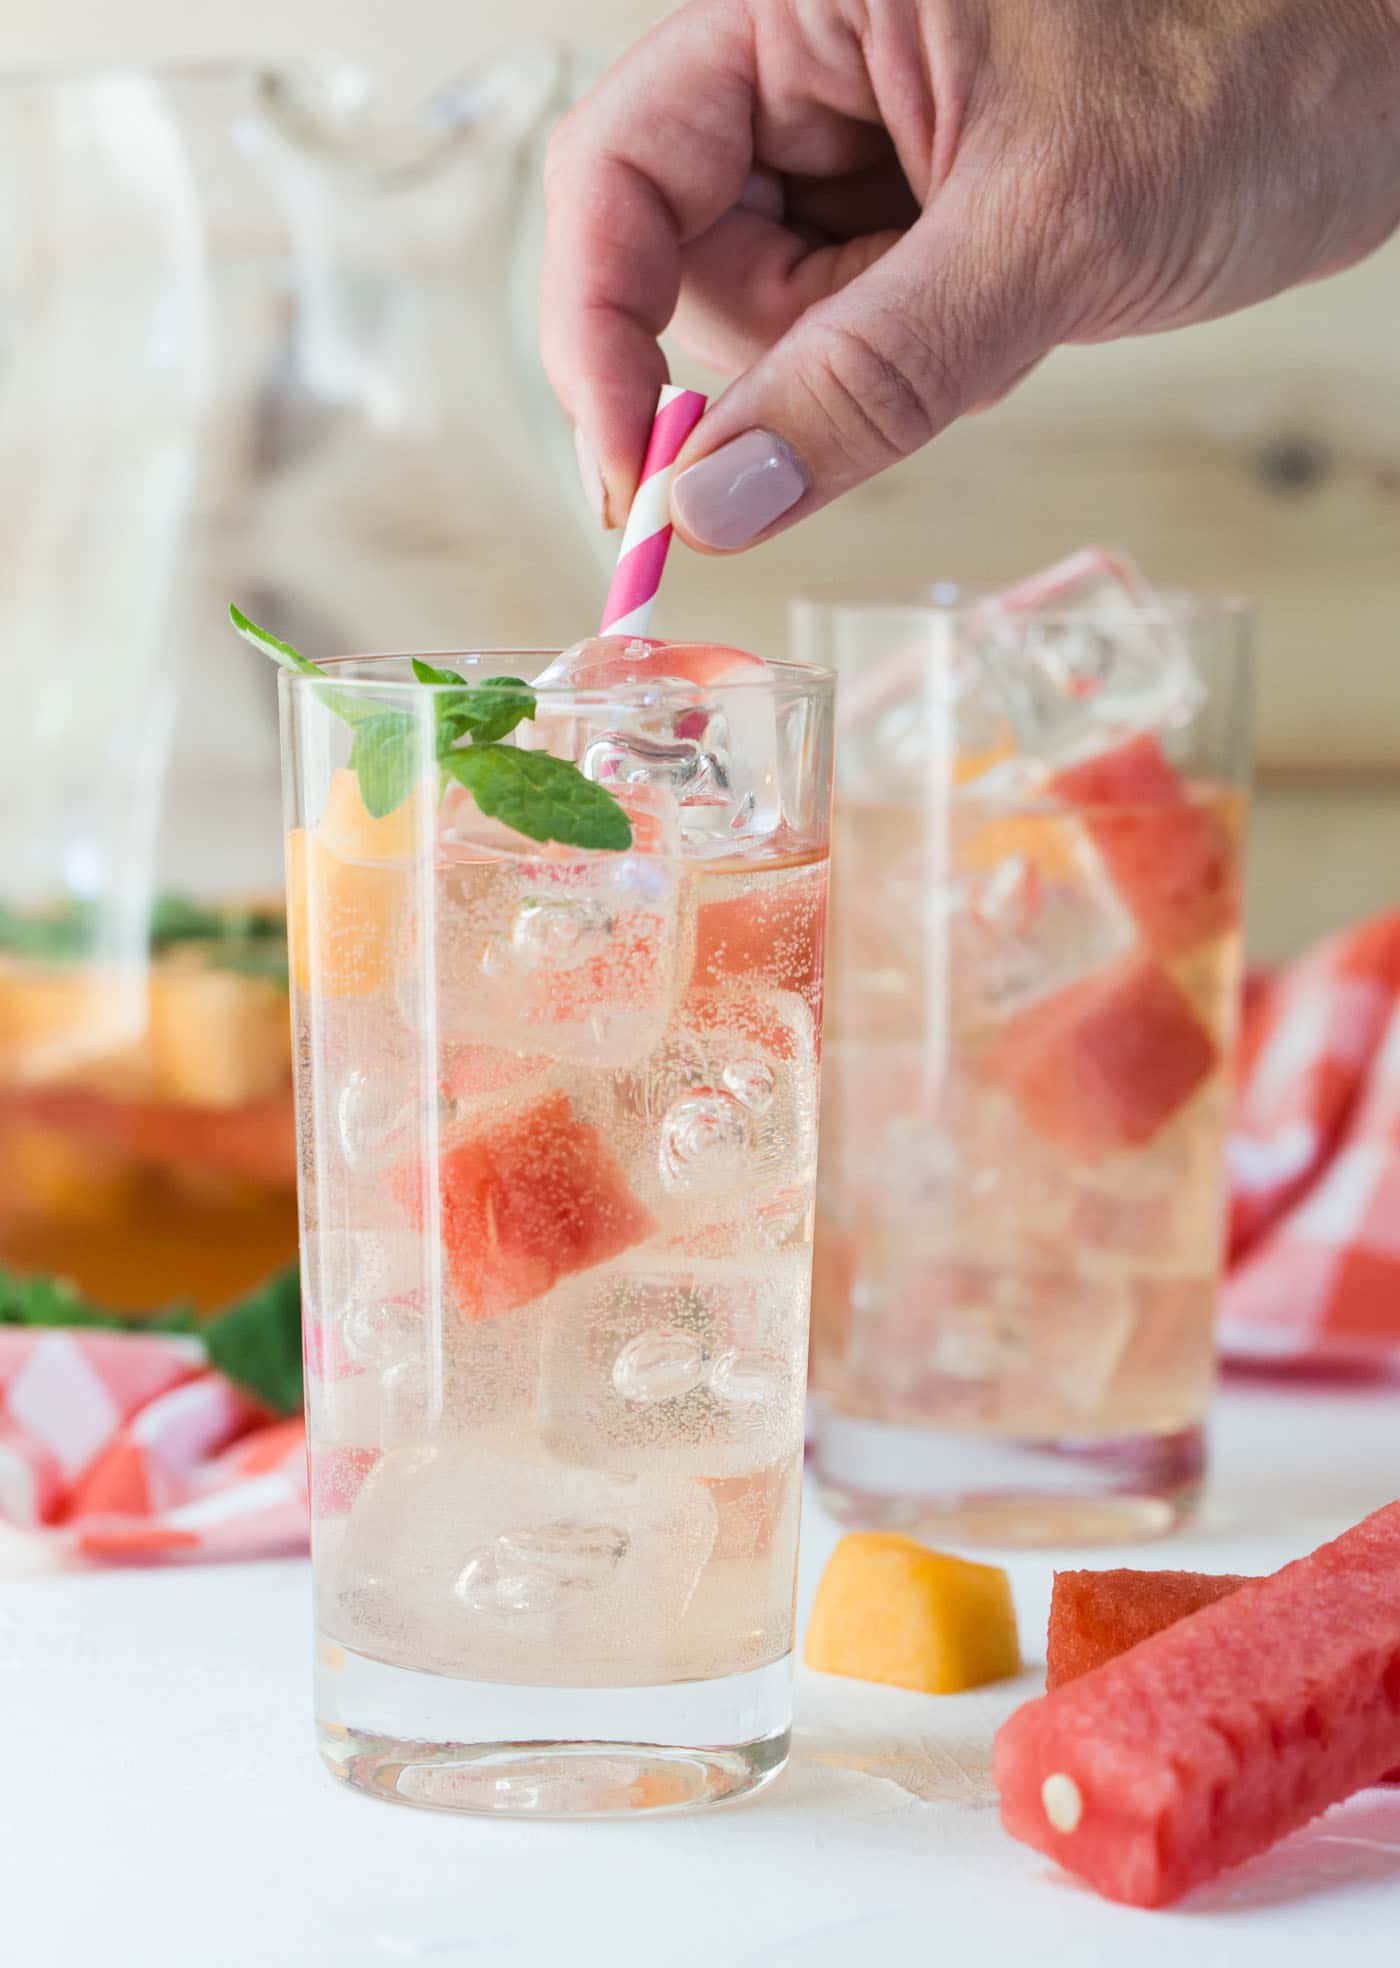 Rosé Elderflower Sangria over ice served with melon balls and mint leaves! Perfect batch cocktail!